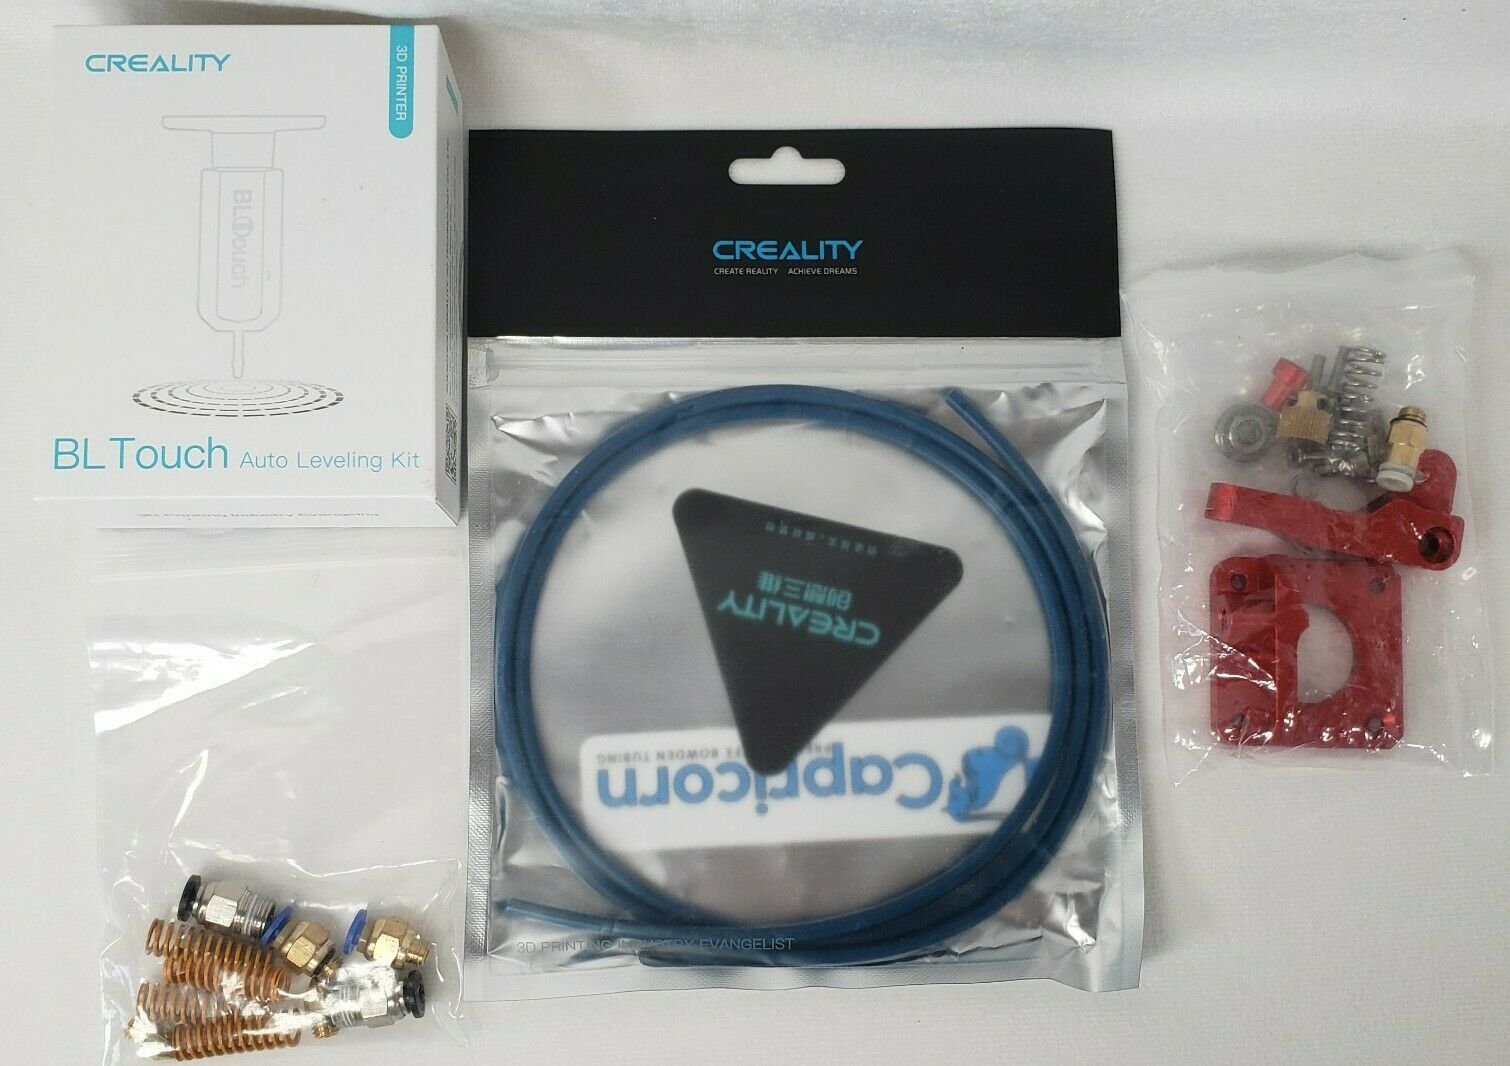 Creality BL Touch 32 Bit Motherboard Auto Leveling Kit 3d Printer Capricorn Tube